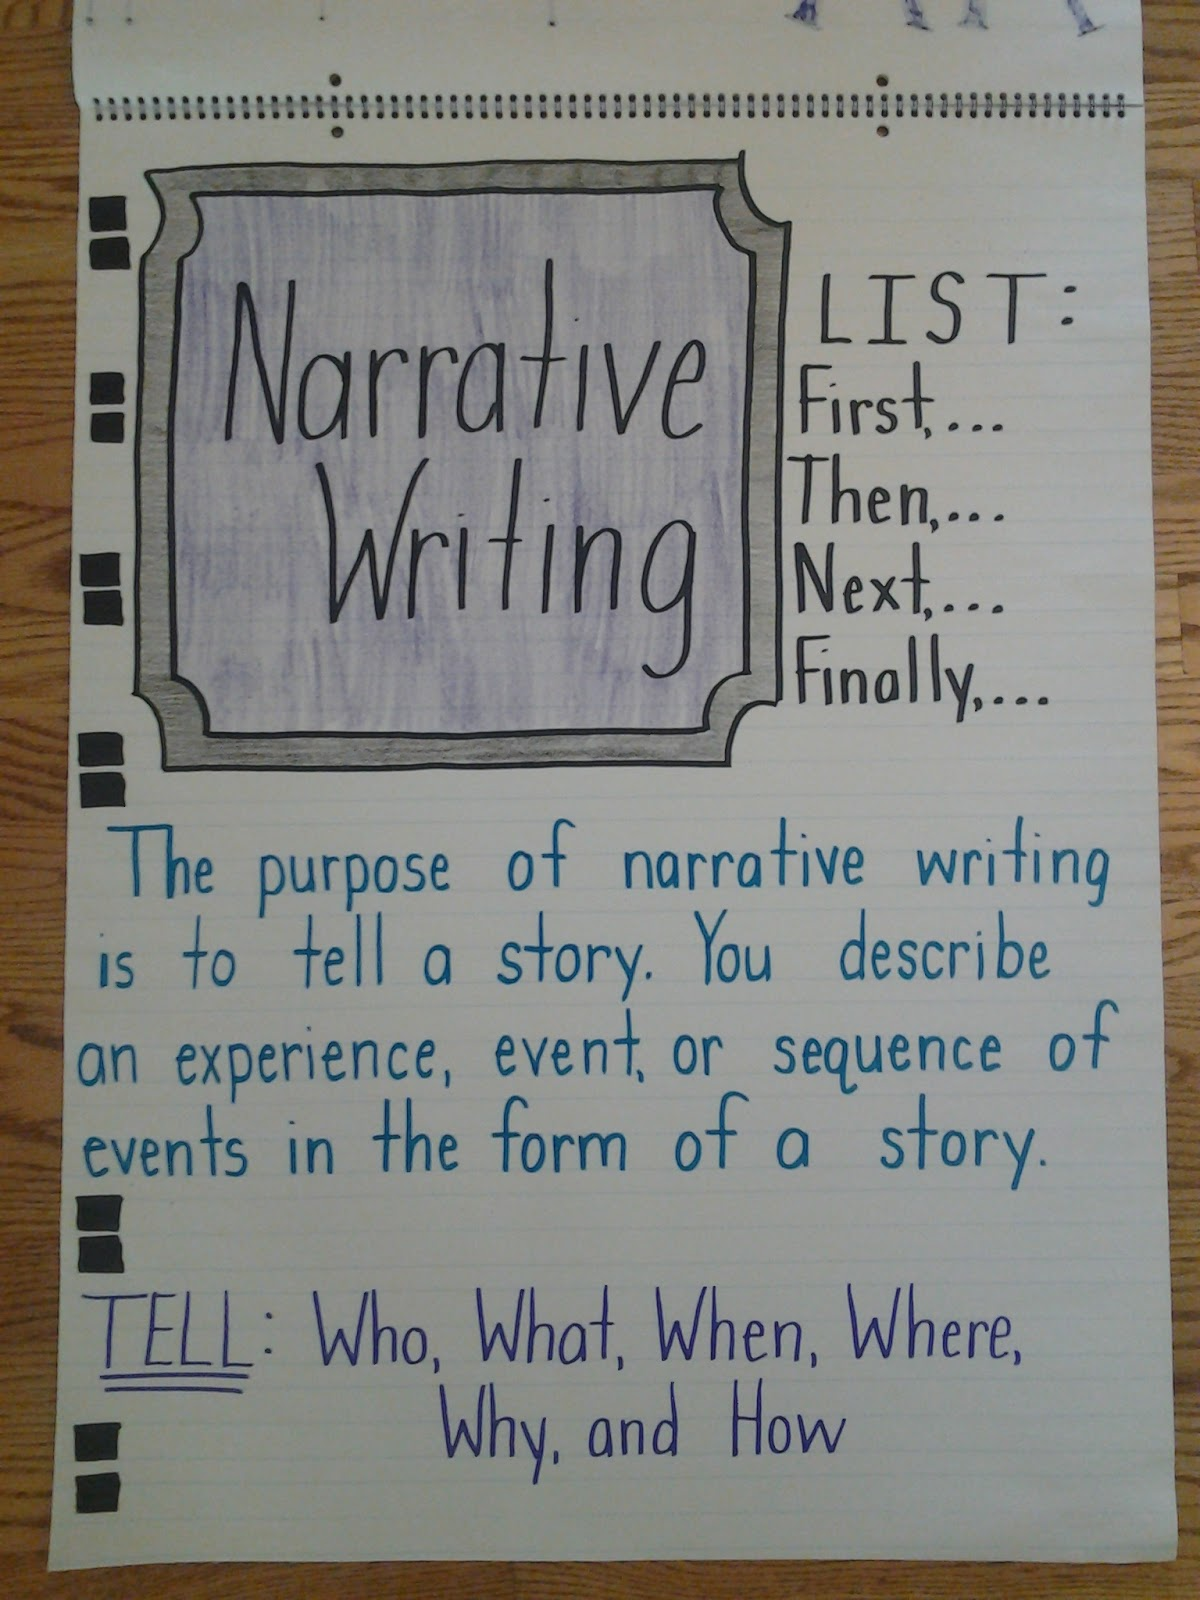 my first memory personal narrative essay Anyone can tell a story, therefore, anyone can write a narrative essay read on to find out how to use the written word for great essays with our guide.